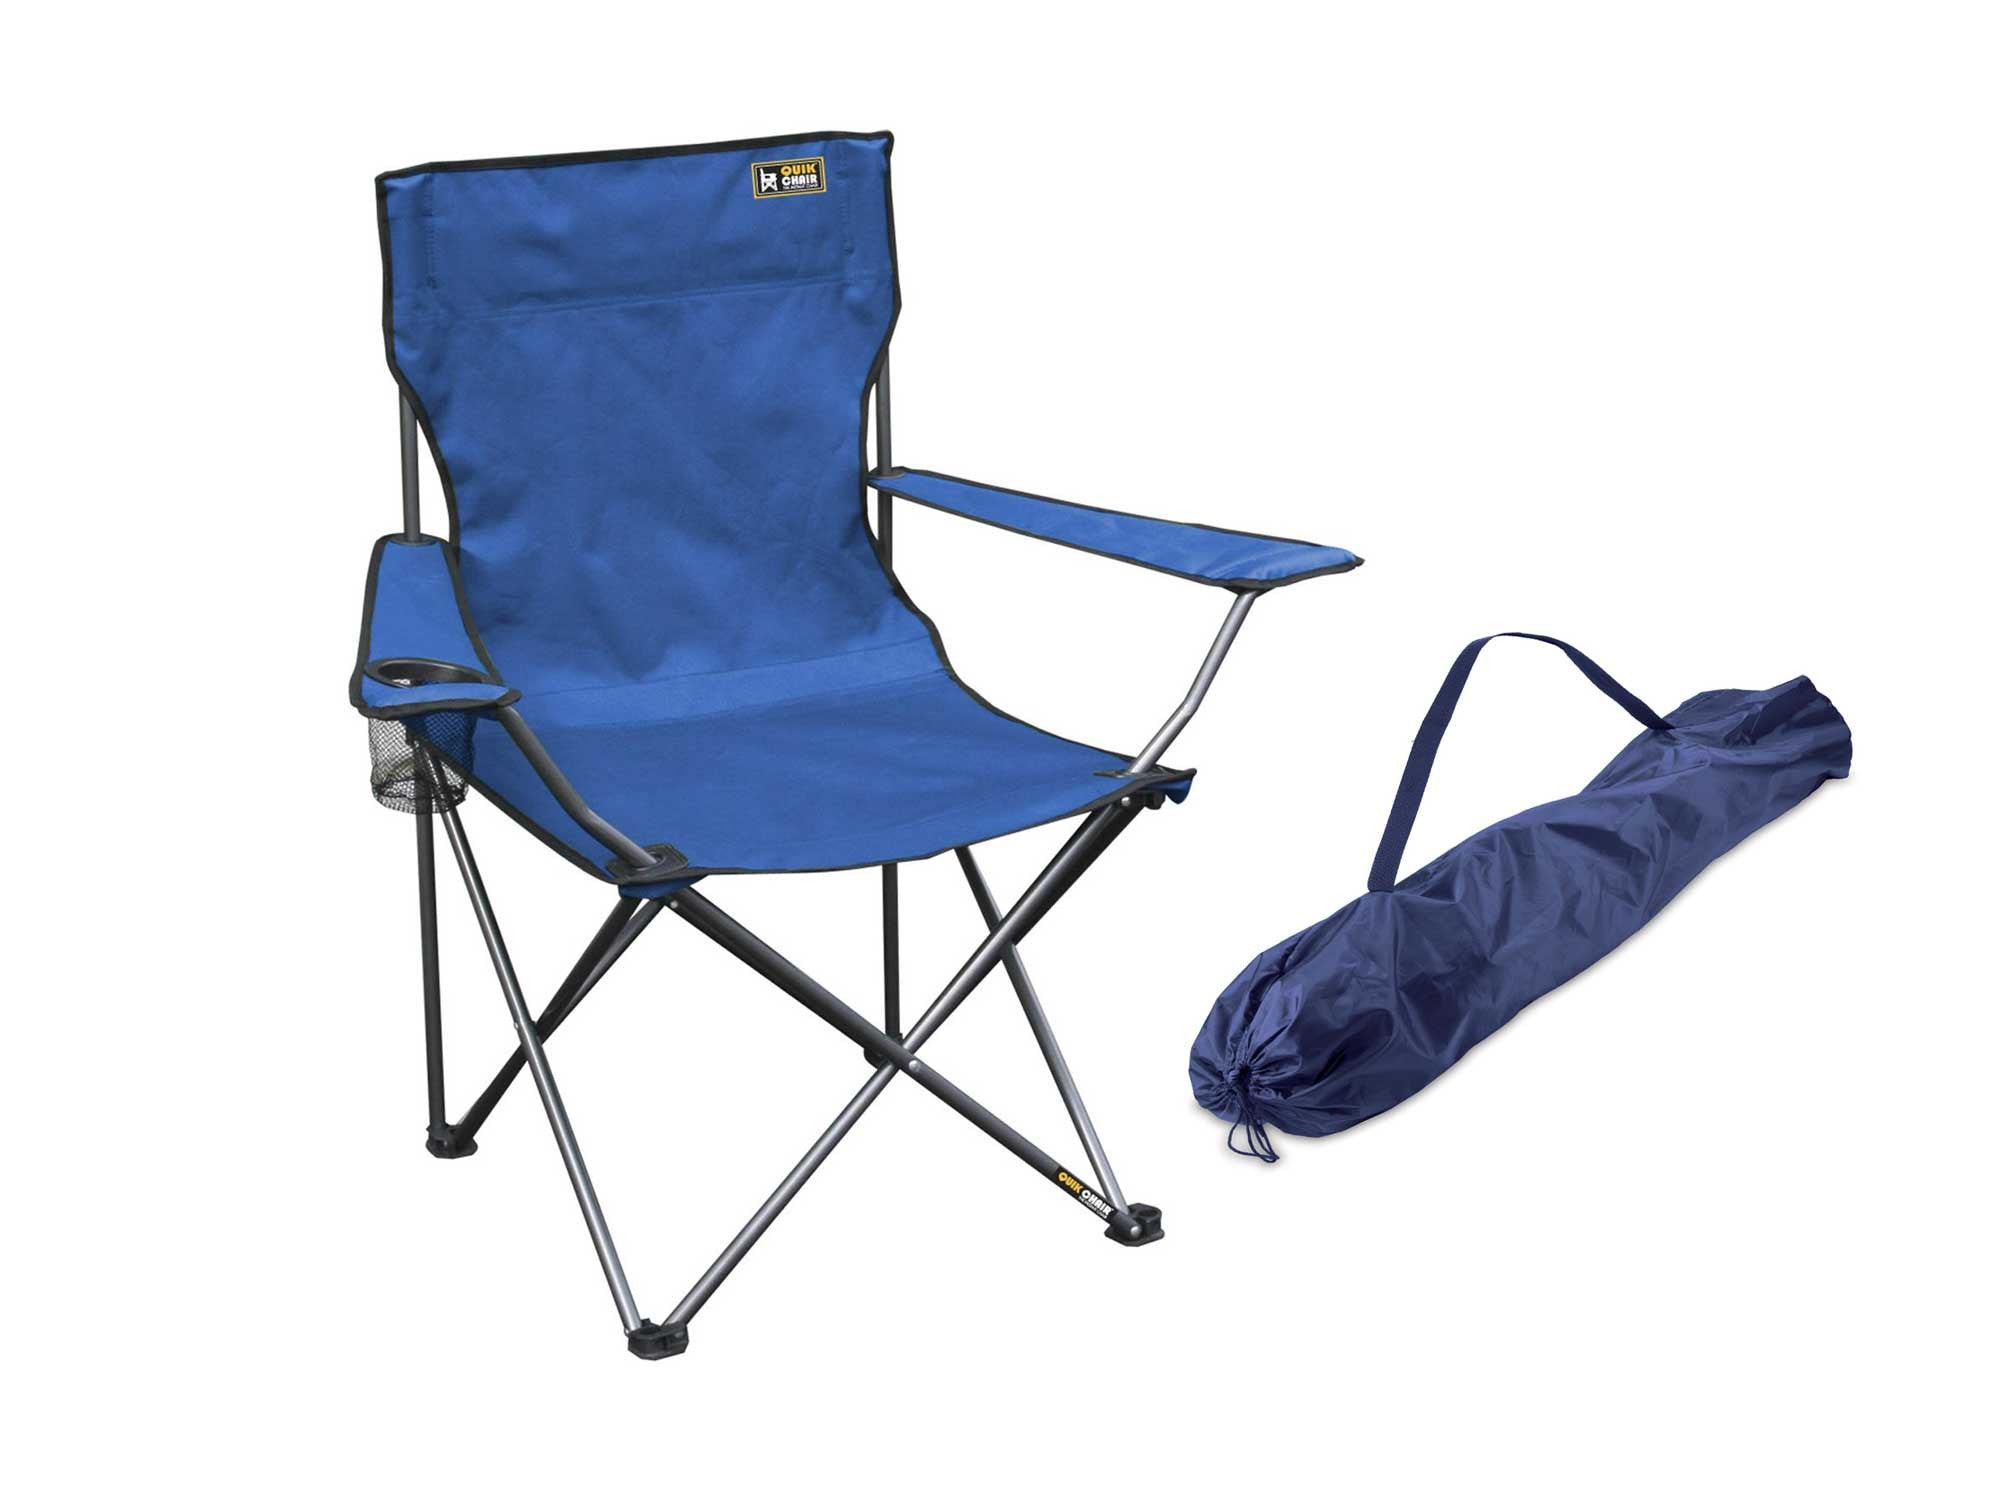 beautiful chairs for home and top furniture comfort ultimate folding concept camping relaxation chair photo